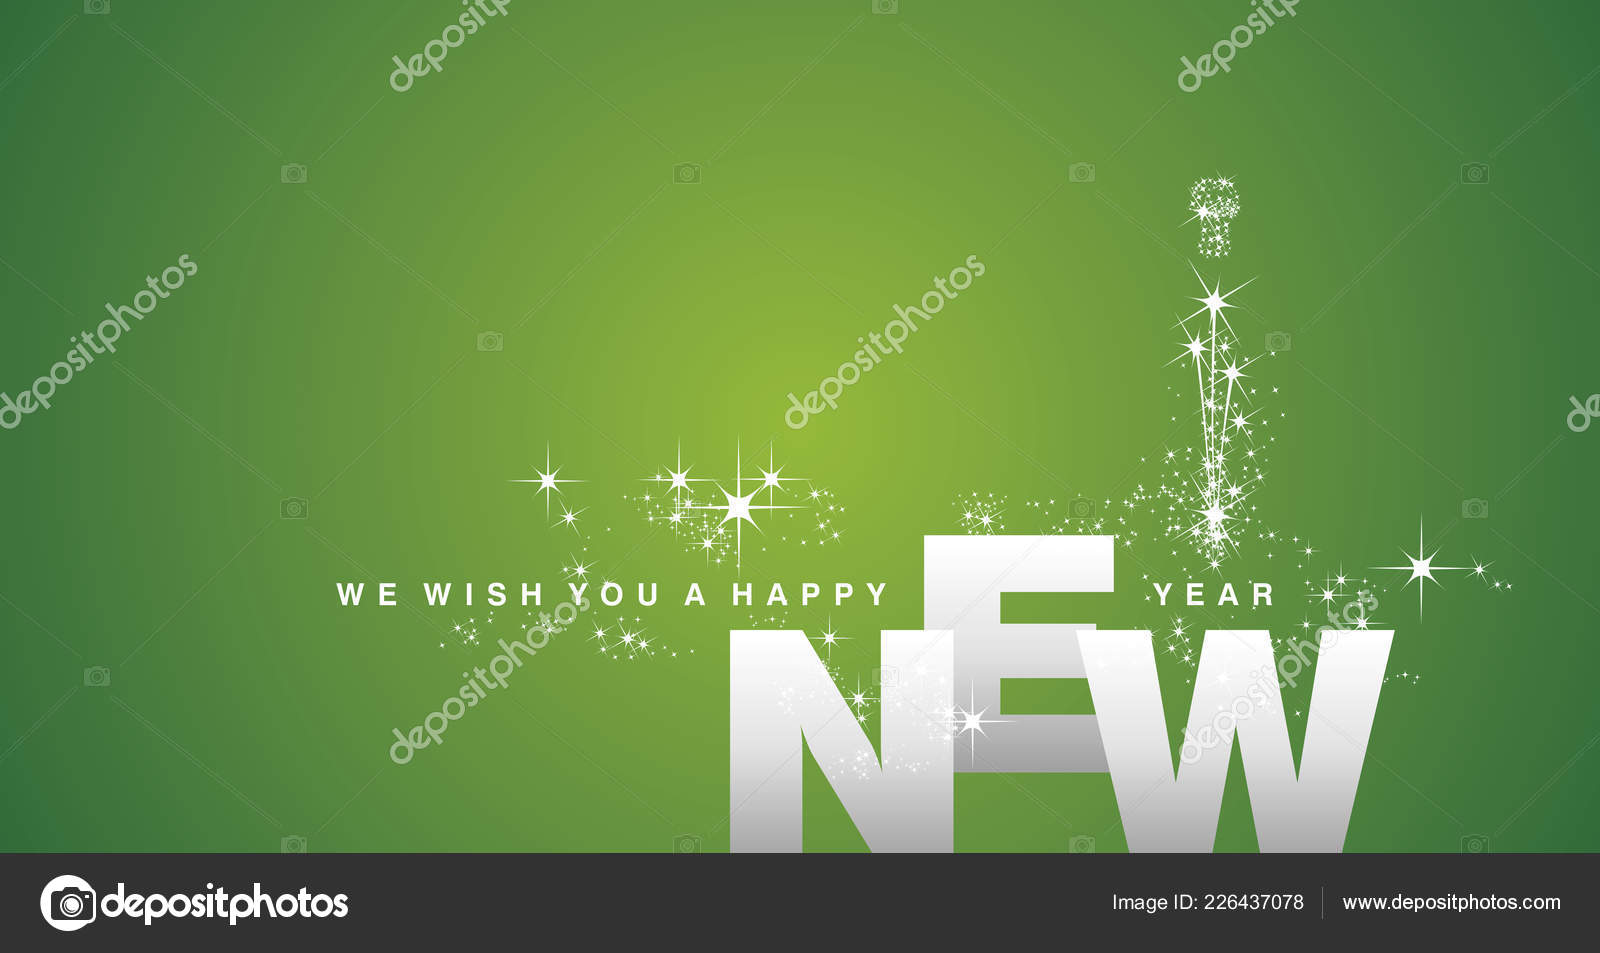 wish you happy new year 2019 silver green background stock vector